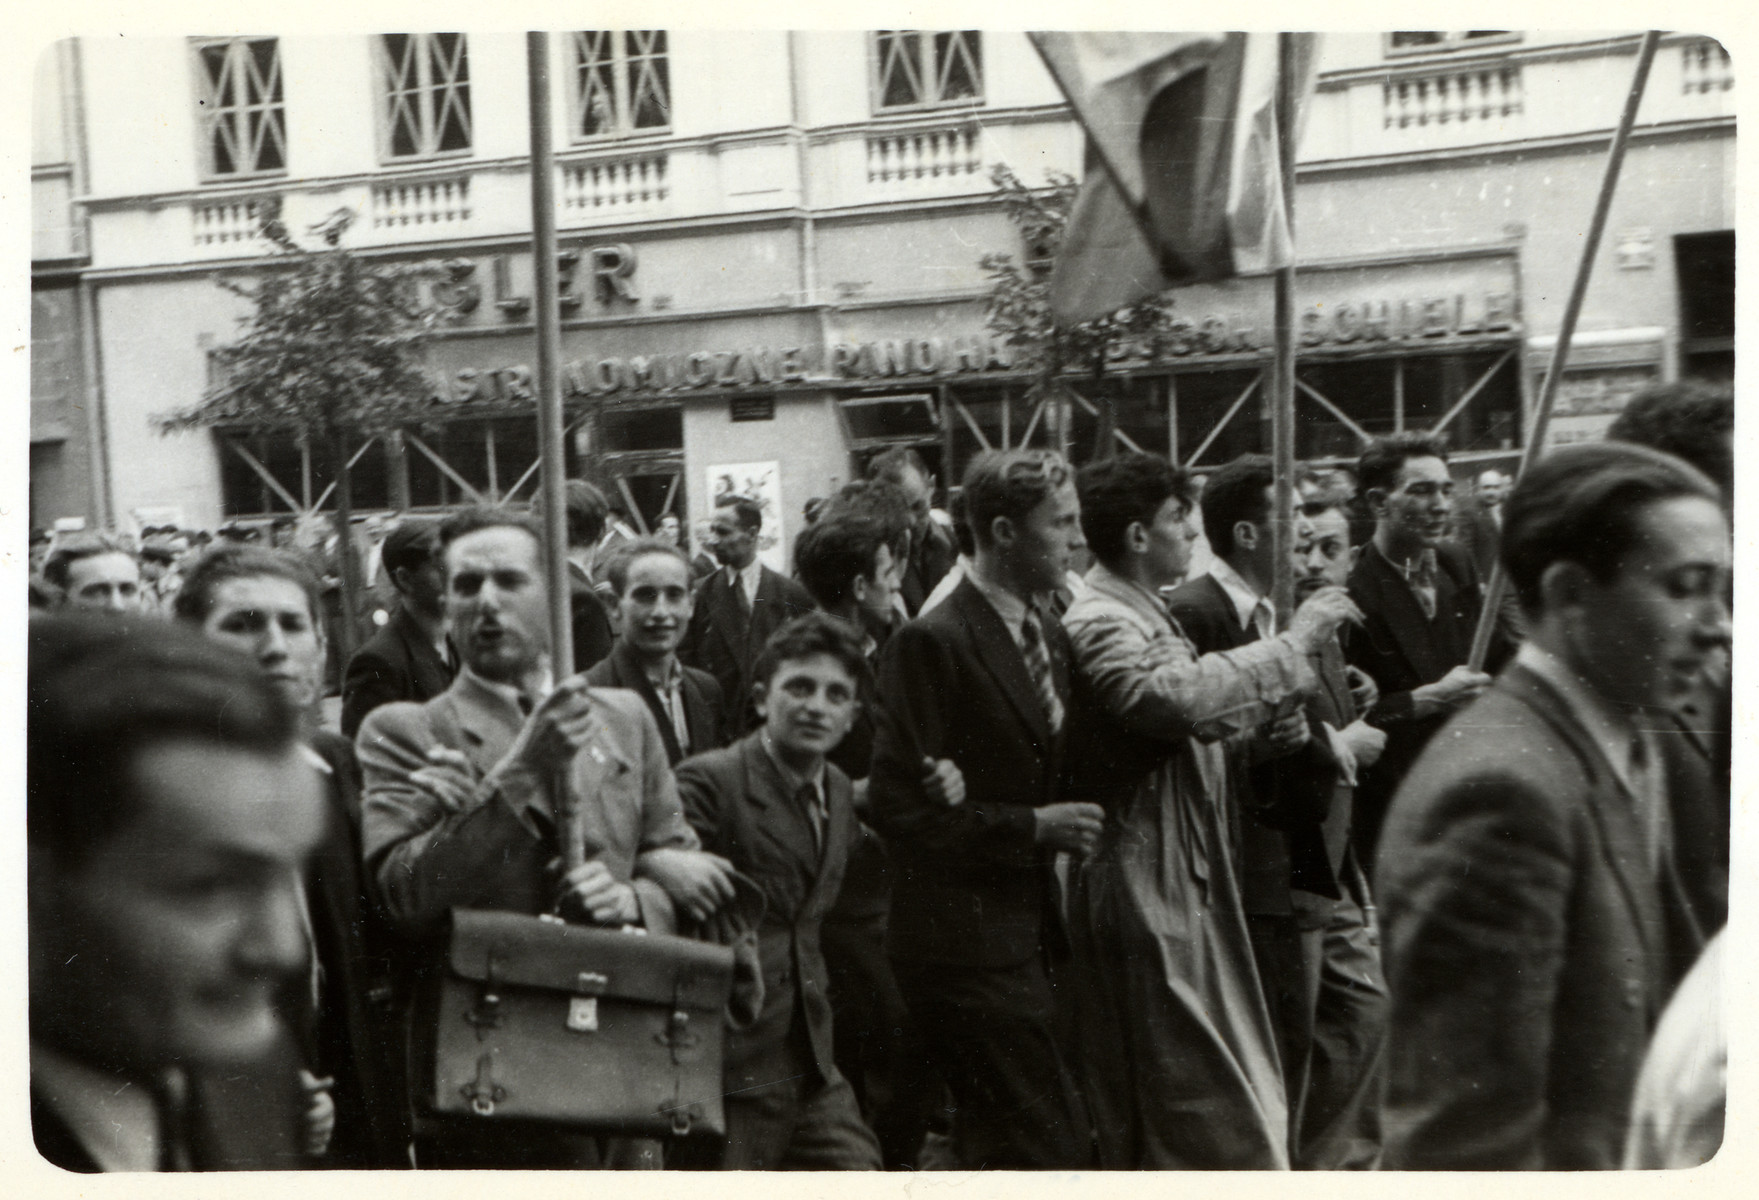 """A Moment of Confidence:"" Poles celebrate in the streets at the news that England and France declared war on Germany.   [The book ""Warsaw"" by Julien Bryan states that this photograph was taken on September 3, 1939 but Mr. Bryan himself did not arrive in Warsaw until the 7th of that month. This information does not match up, thus the tentative date.]"